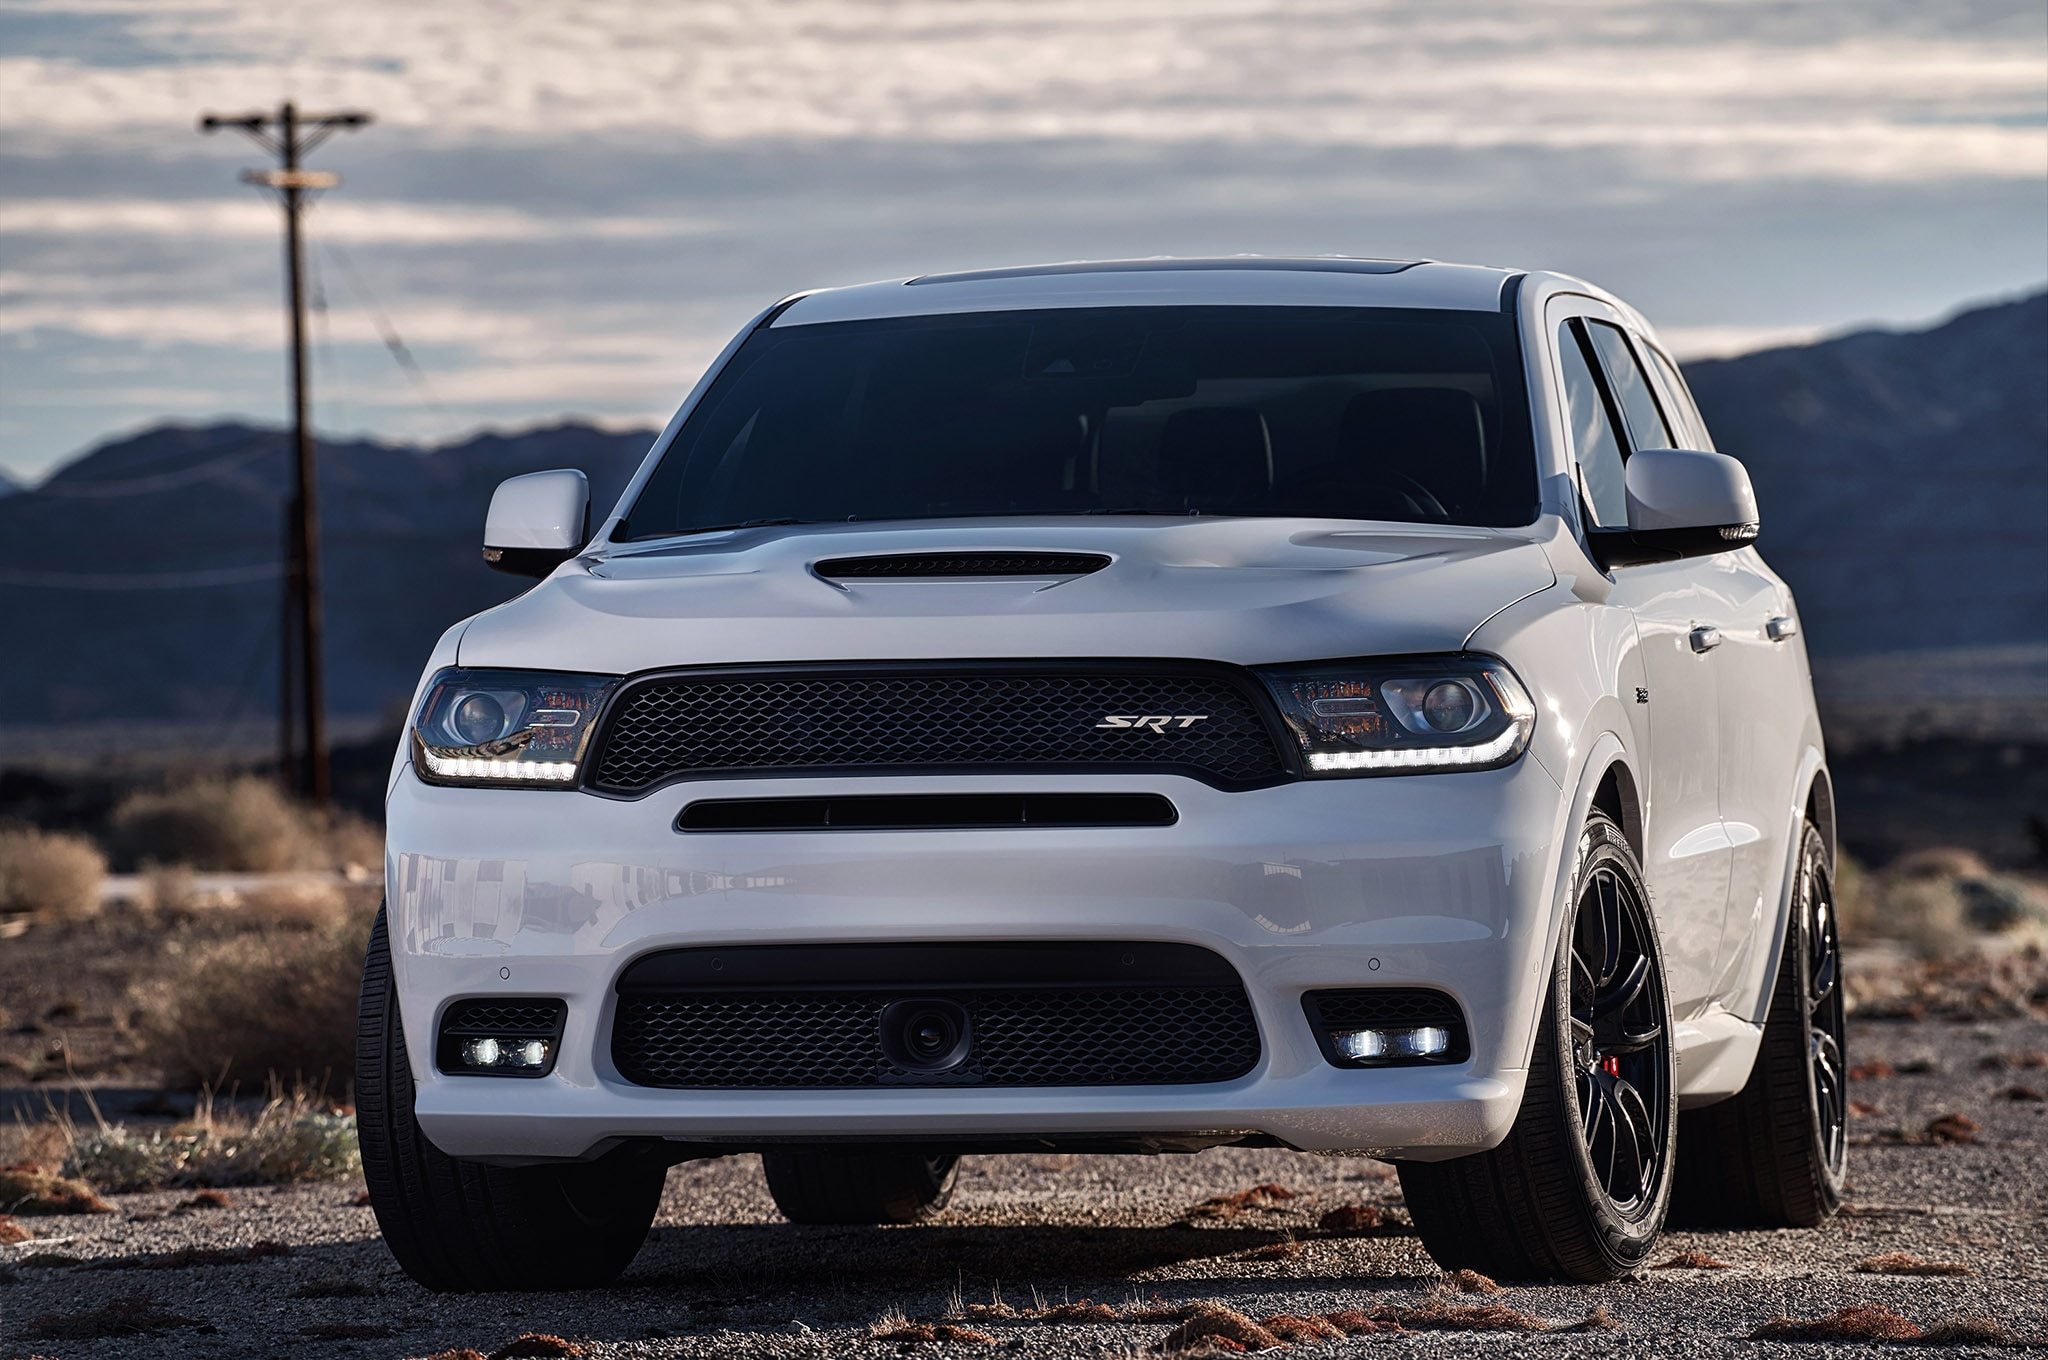 2018 dodge durango srt pricing announced automobile magazine. Black Bedroom Furniture Sets. Home Design Ideas